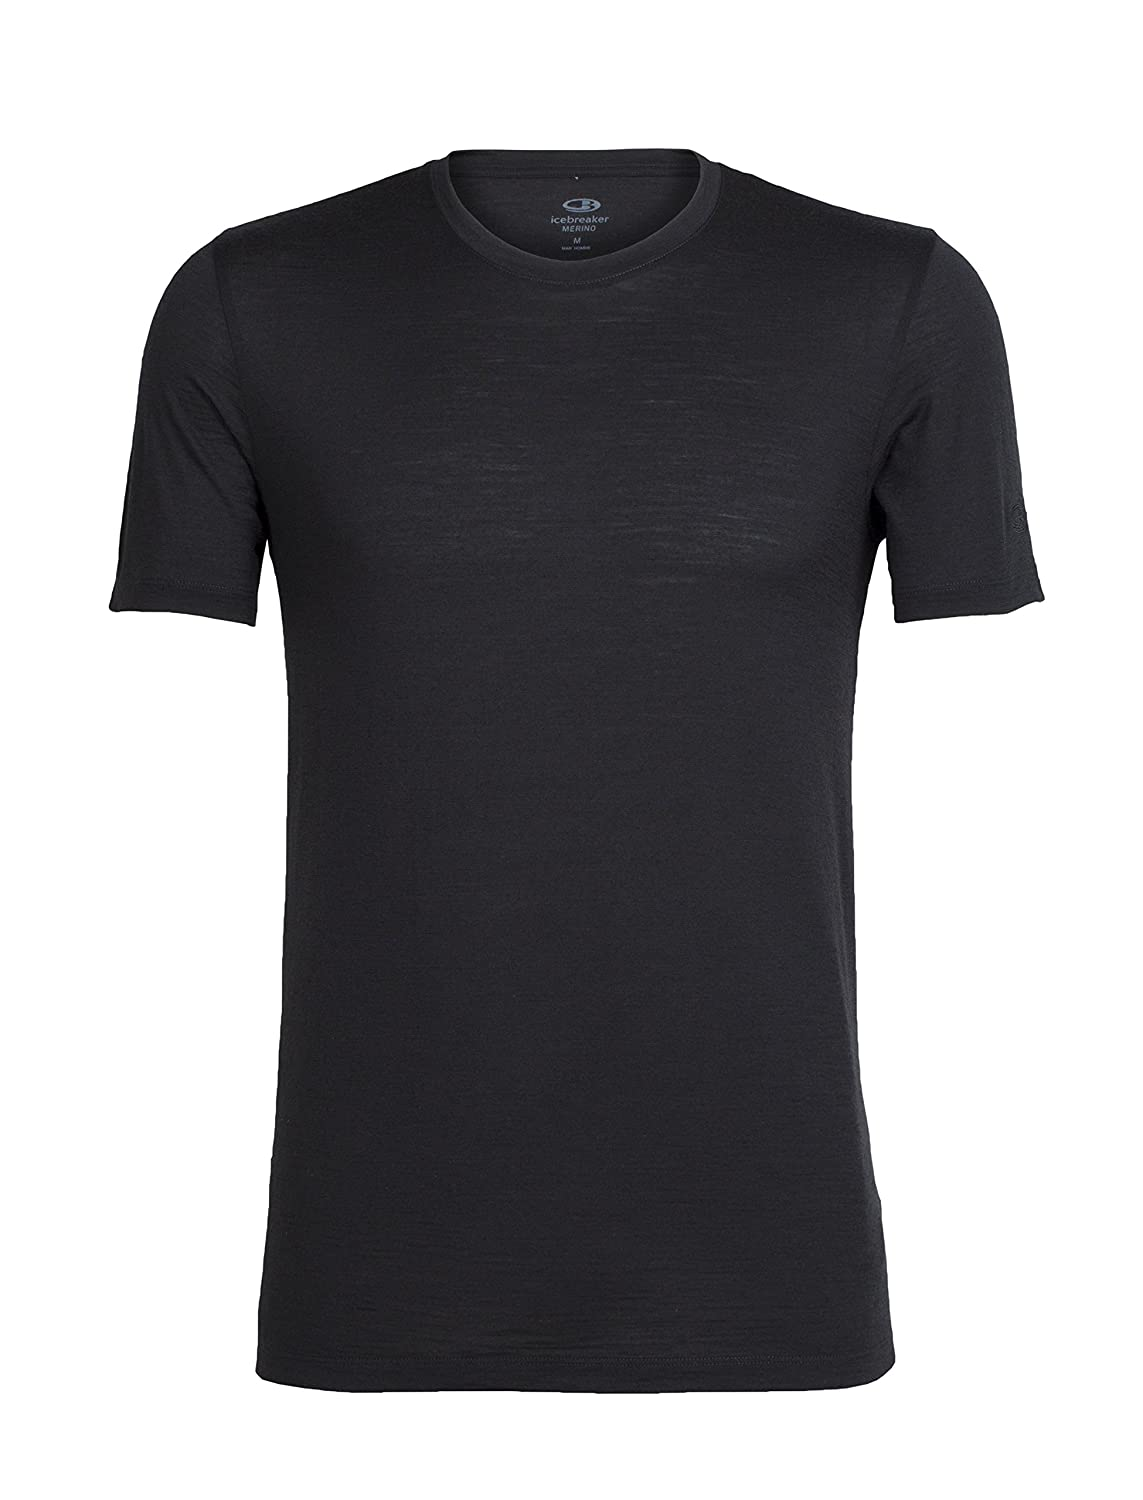 Icebreaker Shirt - kurzarm Tech T Lite Short Sleeve - Shirt Camiseta, color negro, talla L 87b41a